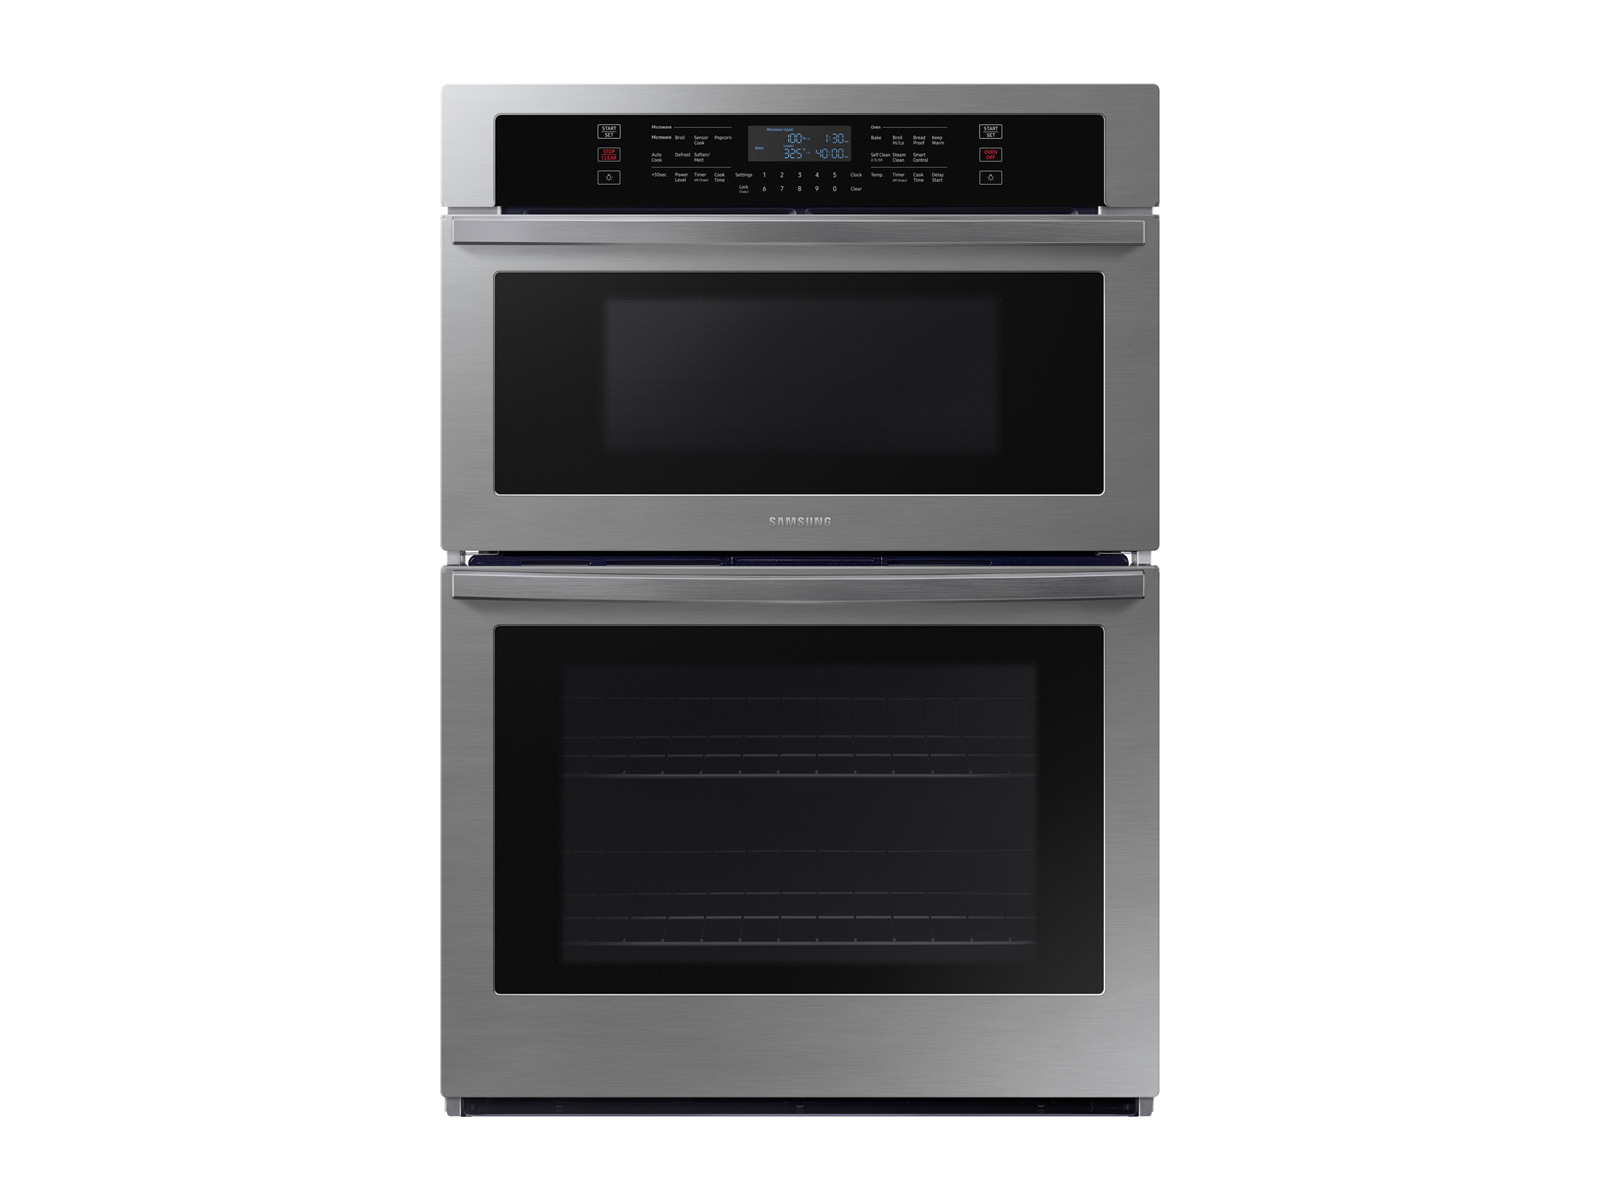 30 smart microwave combination wall oven in stainless steel